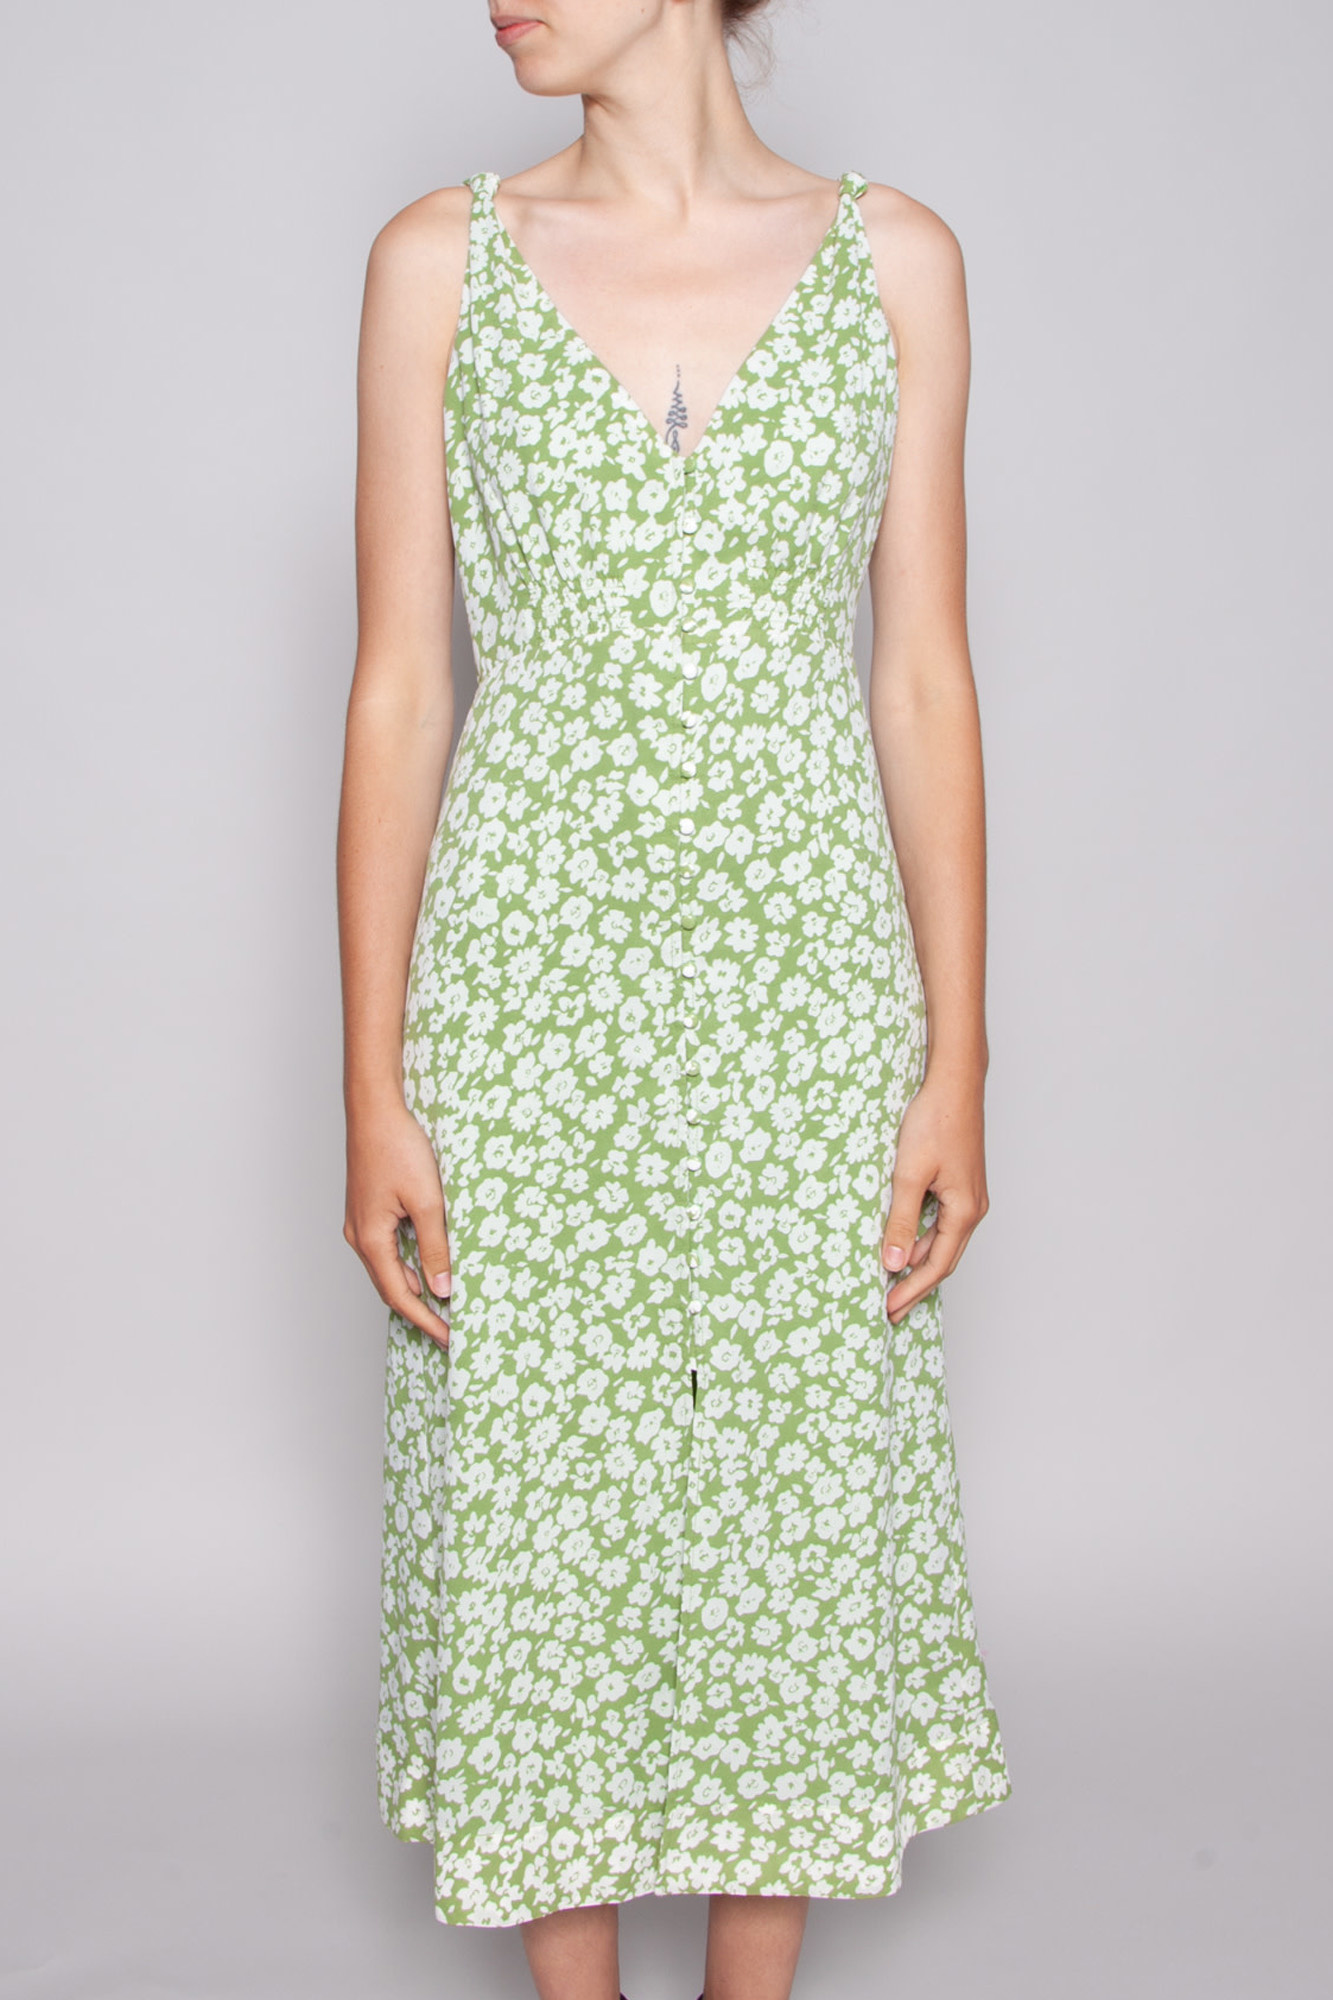 Heartloom GREEN DRESS WITH WHITE FLOWERS CORA - NEW WITH TAG